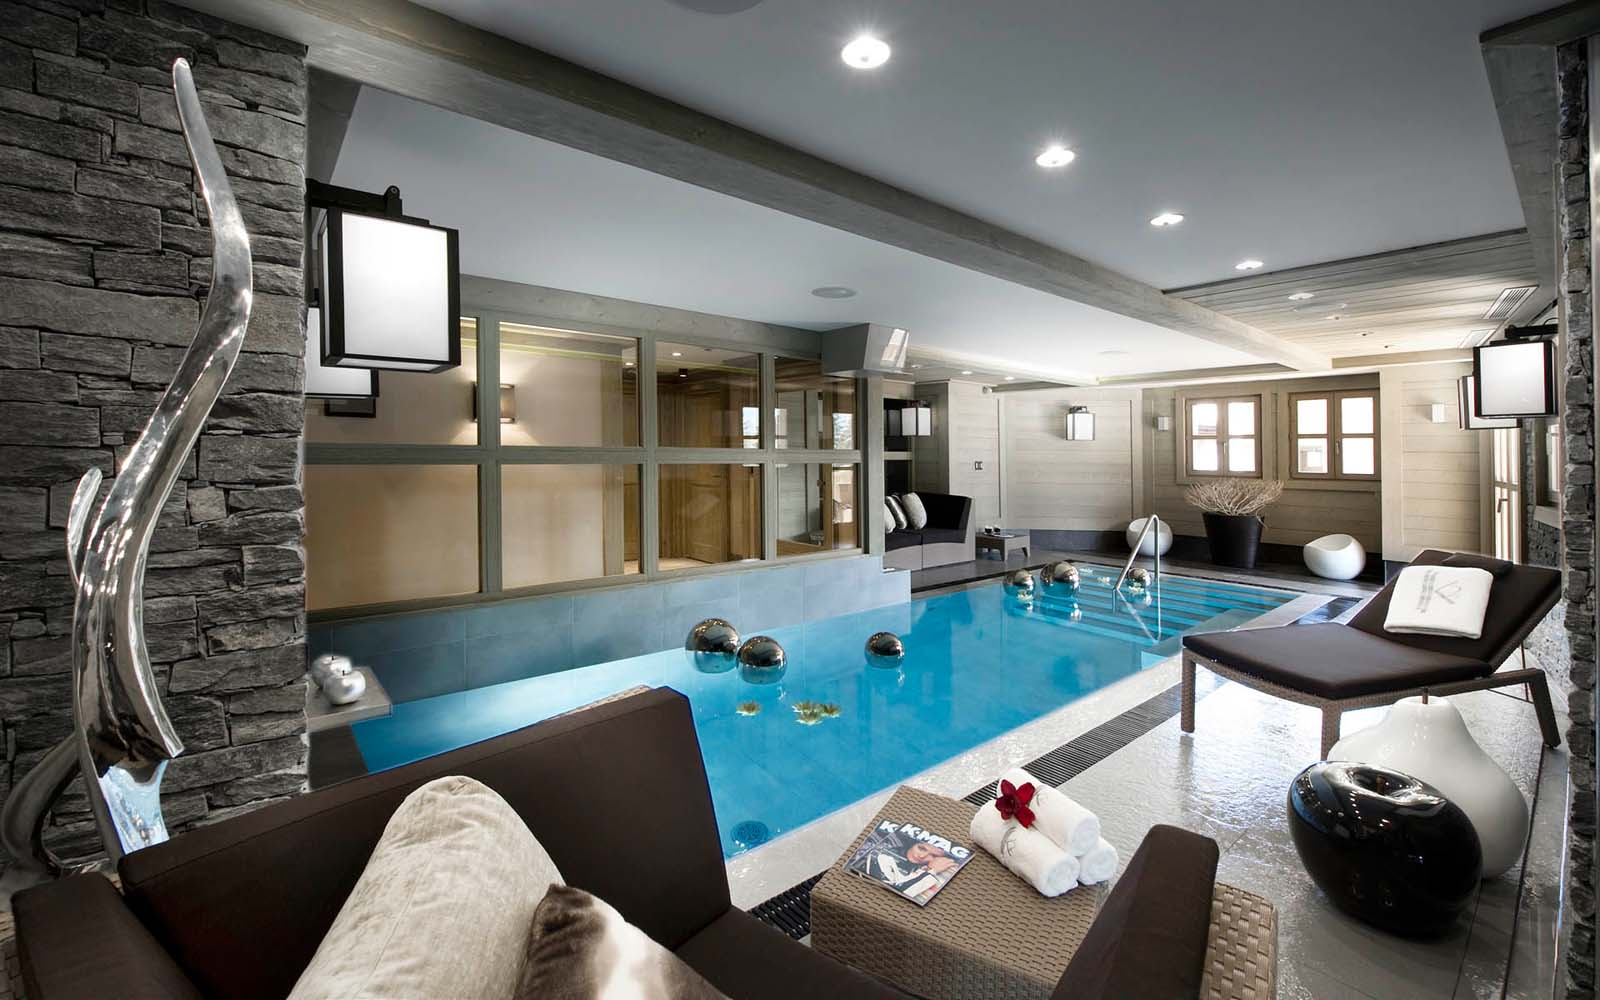 Chalet muztagh in courchevel 1850 by skiboutique for Interior pool